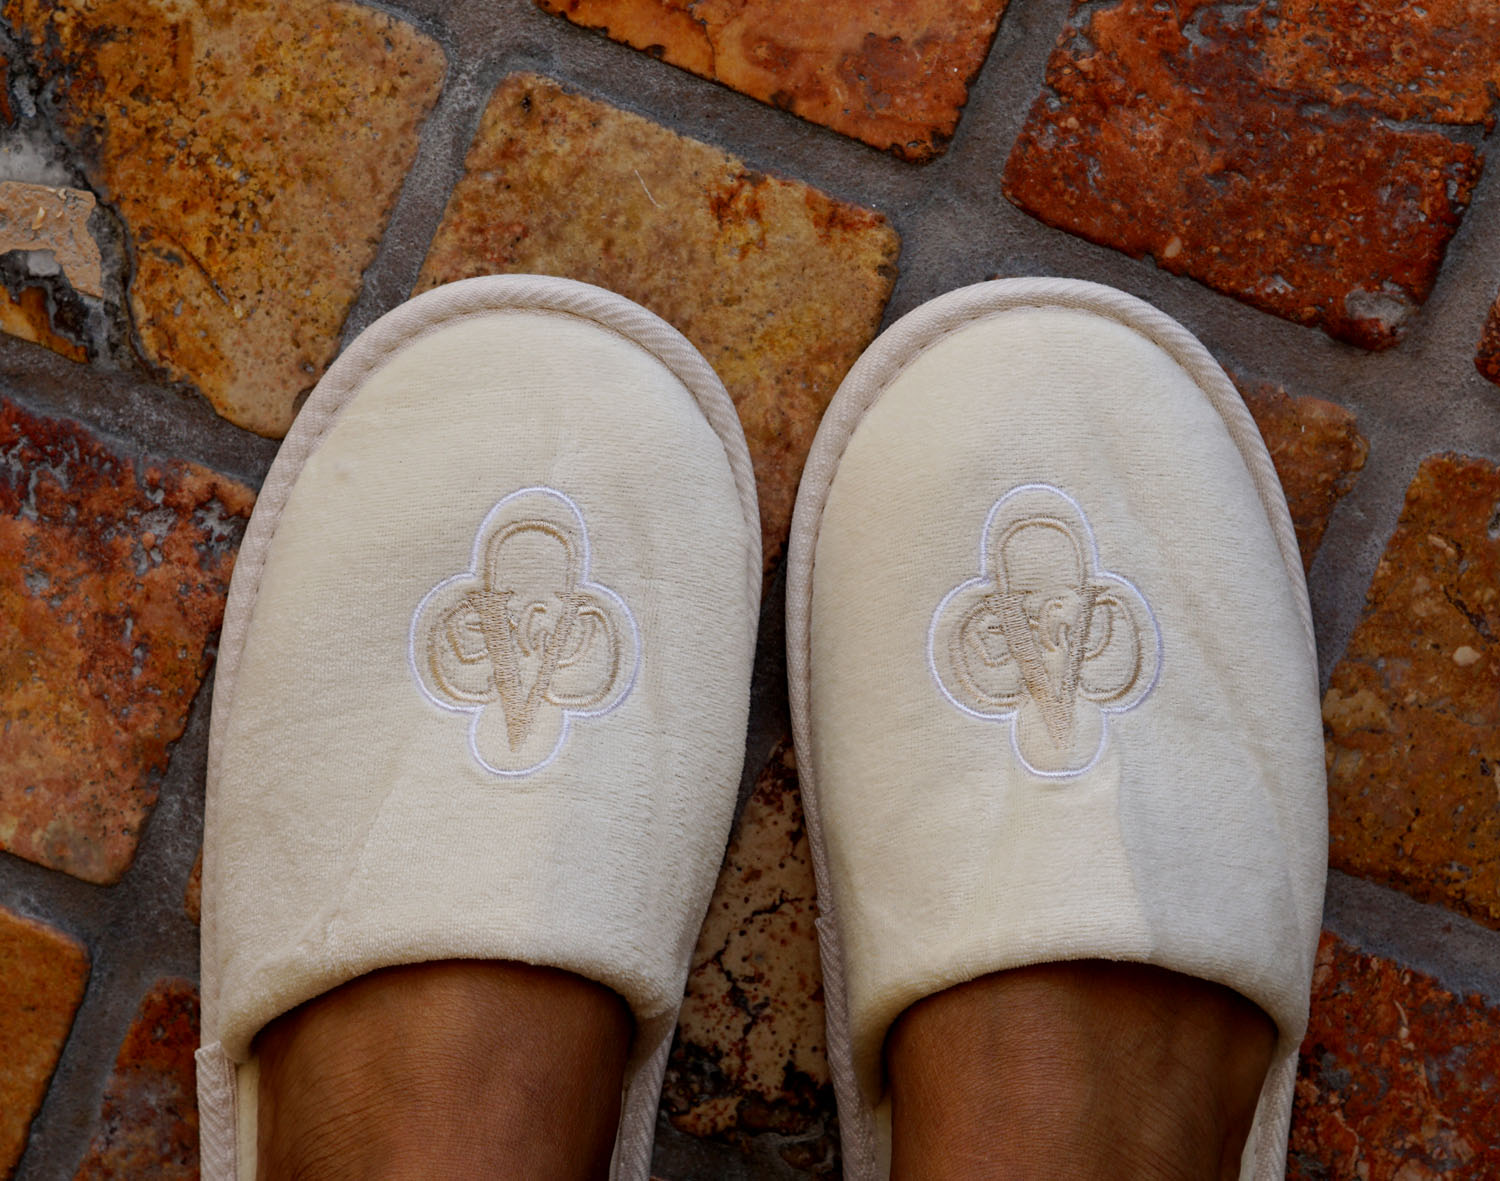 acqualina-resort-spa-luxury-slippers